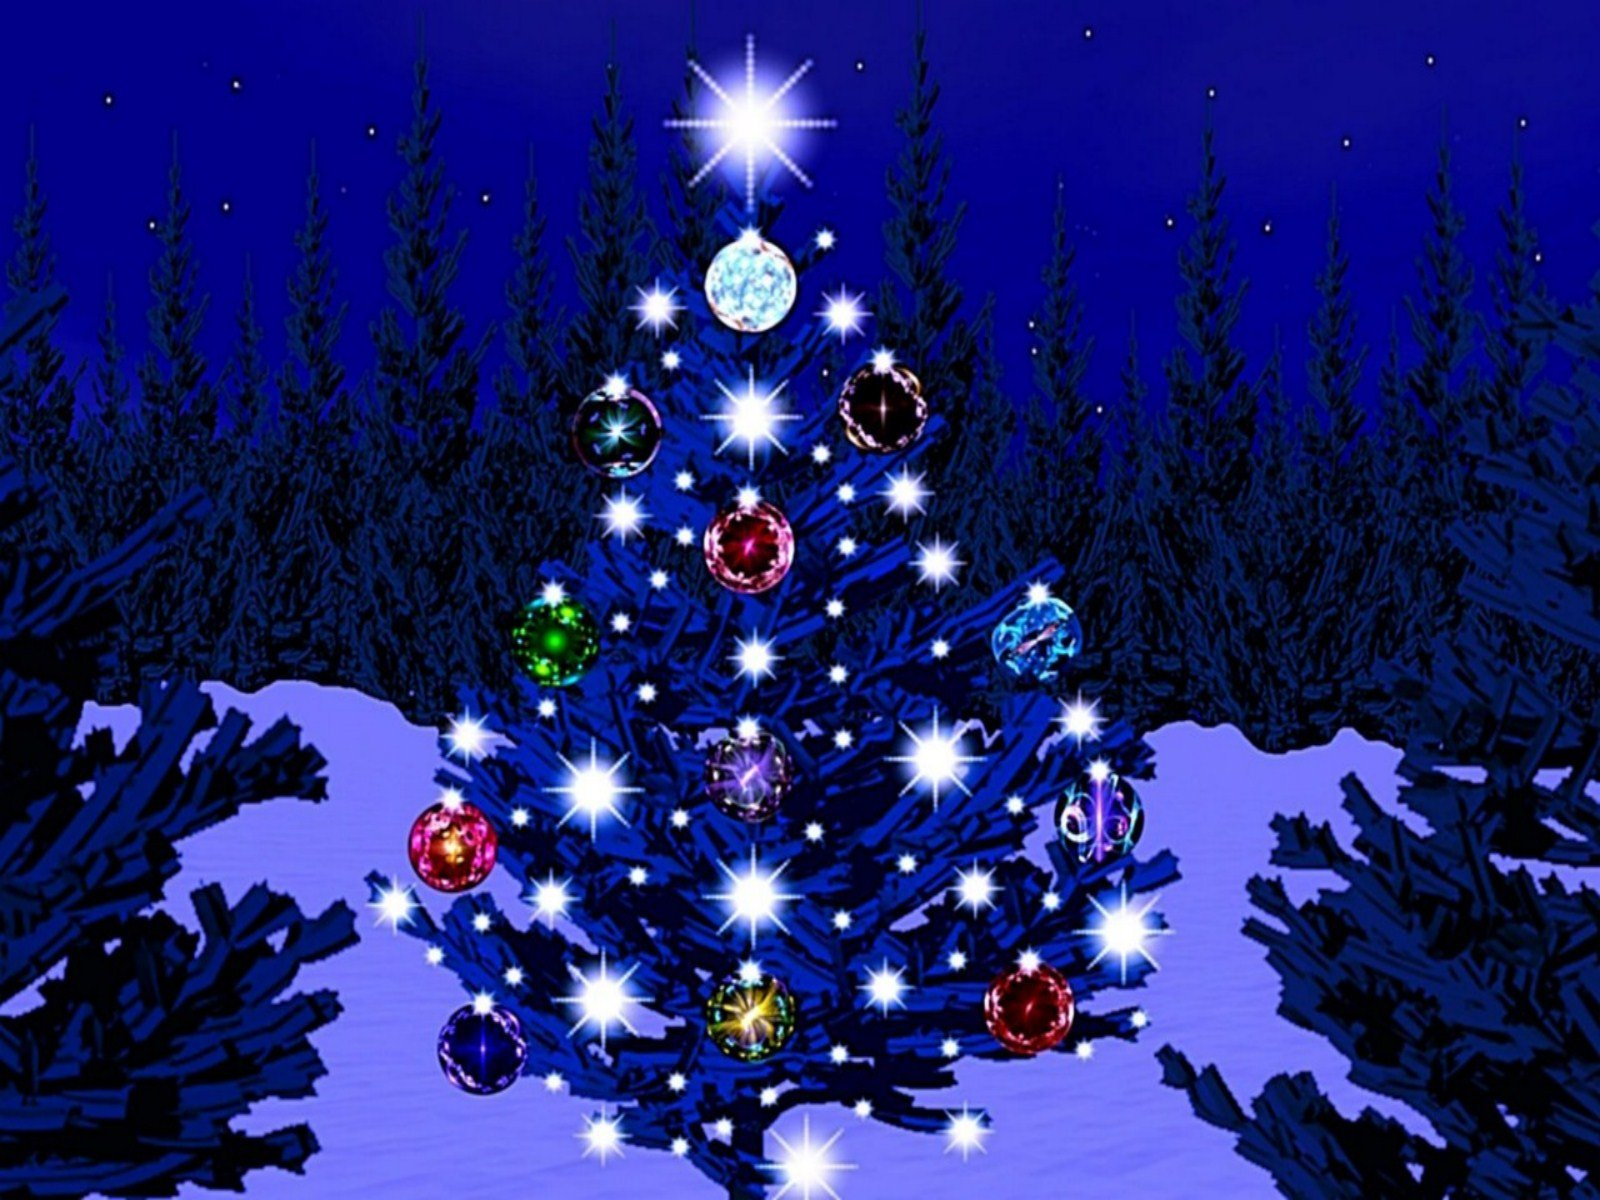 [46+] Blue Christmas Tree Wallpaper On WallpaperSafari